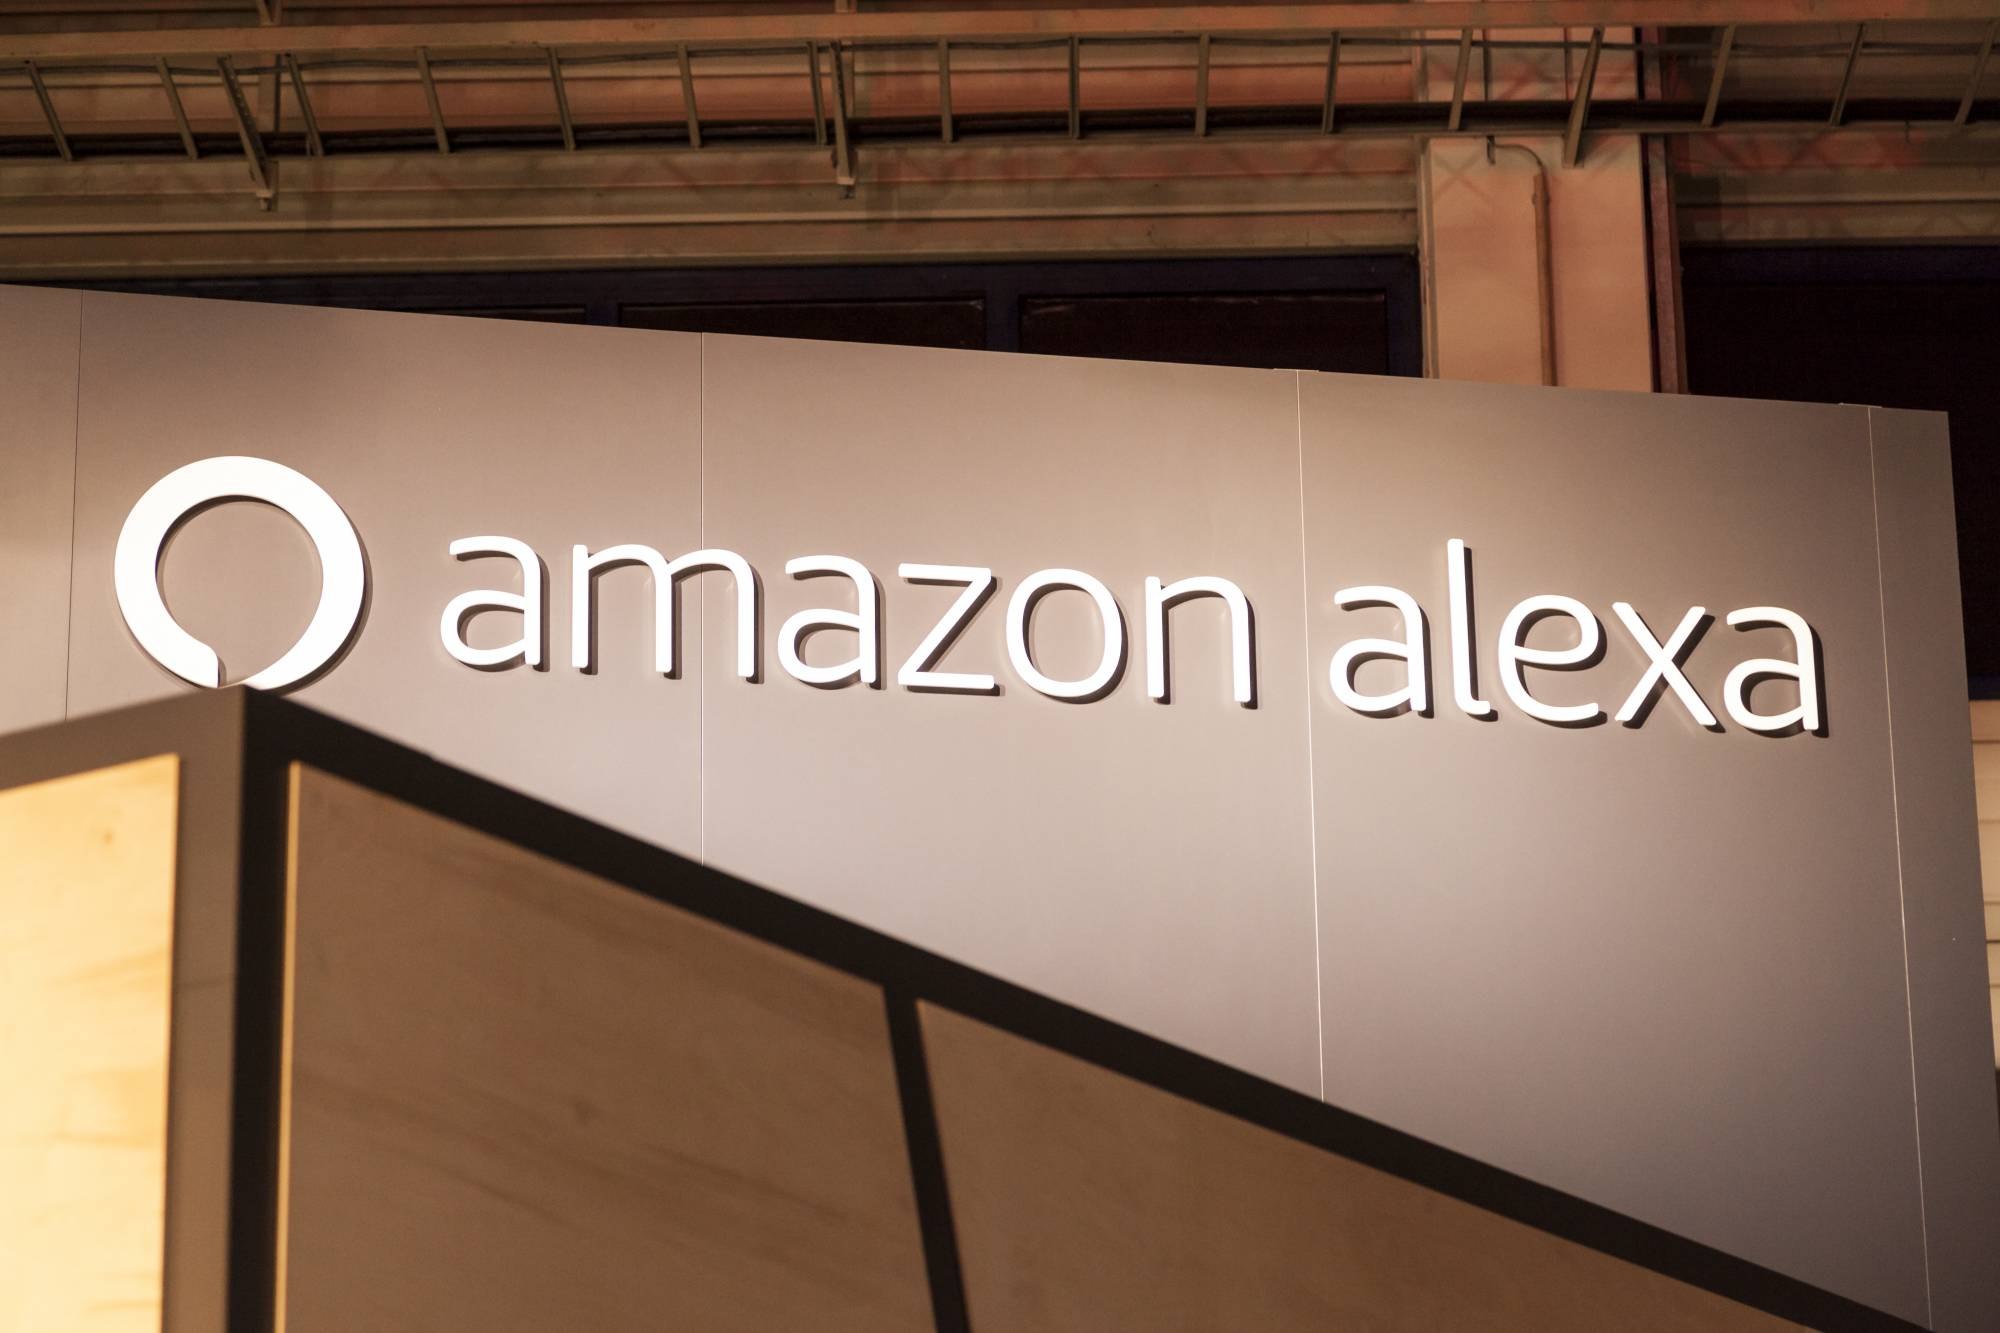 Amazon's Alexa voice assistant to possess more office equipment.